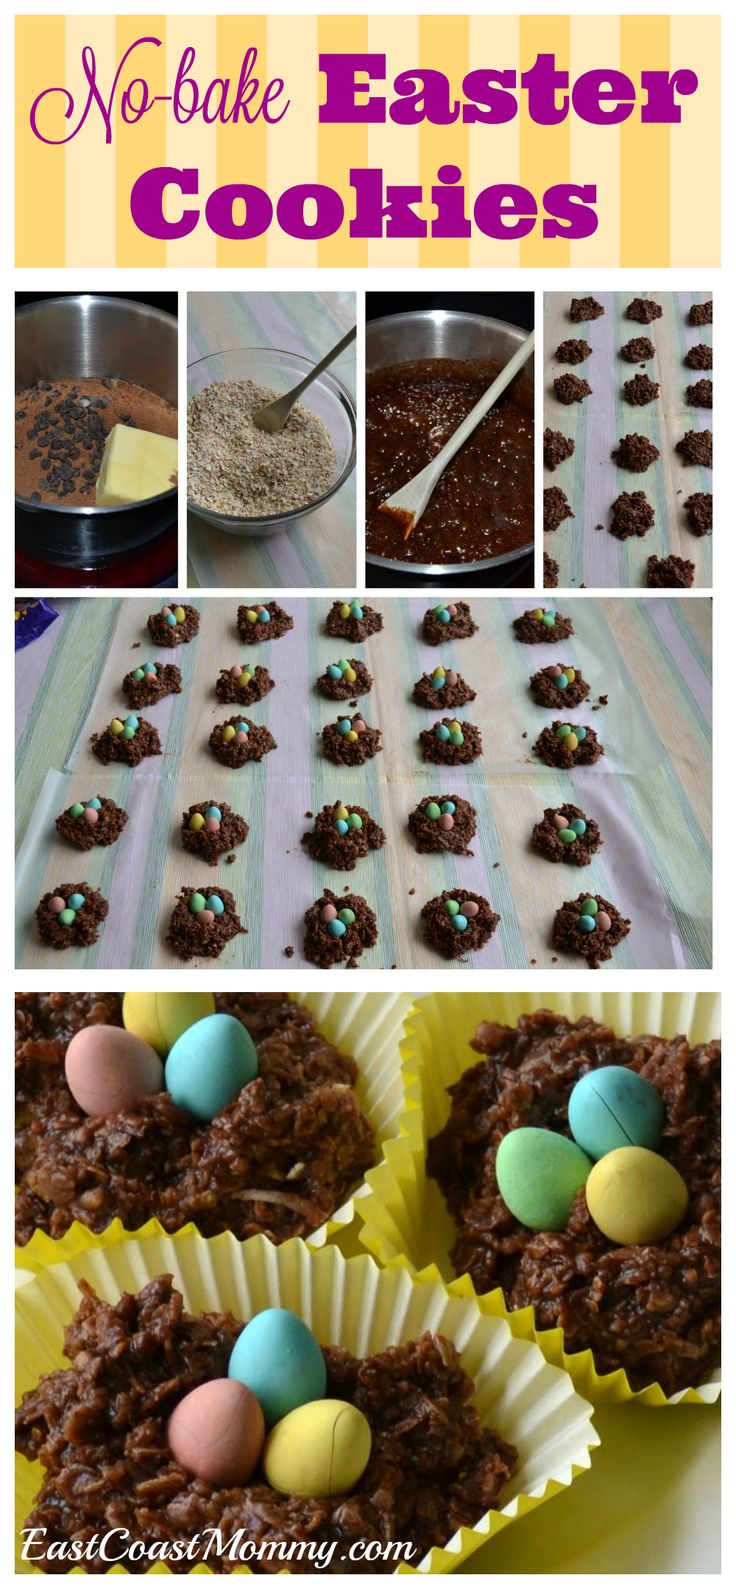 126 best cute food easter images on pinterest creativity bird nest cookies negle Choice Image